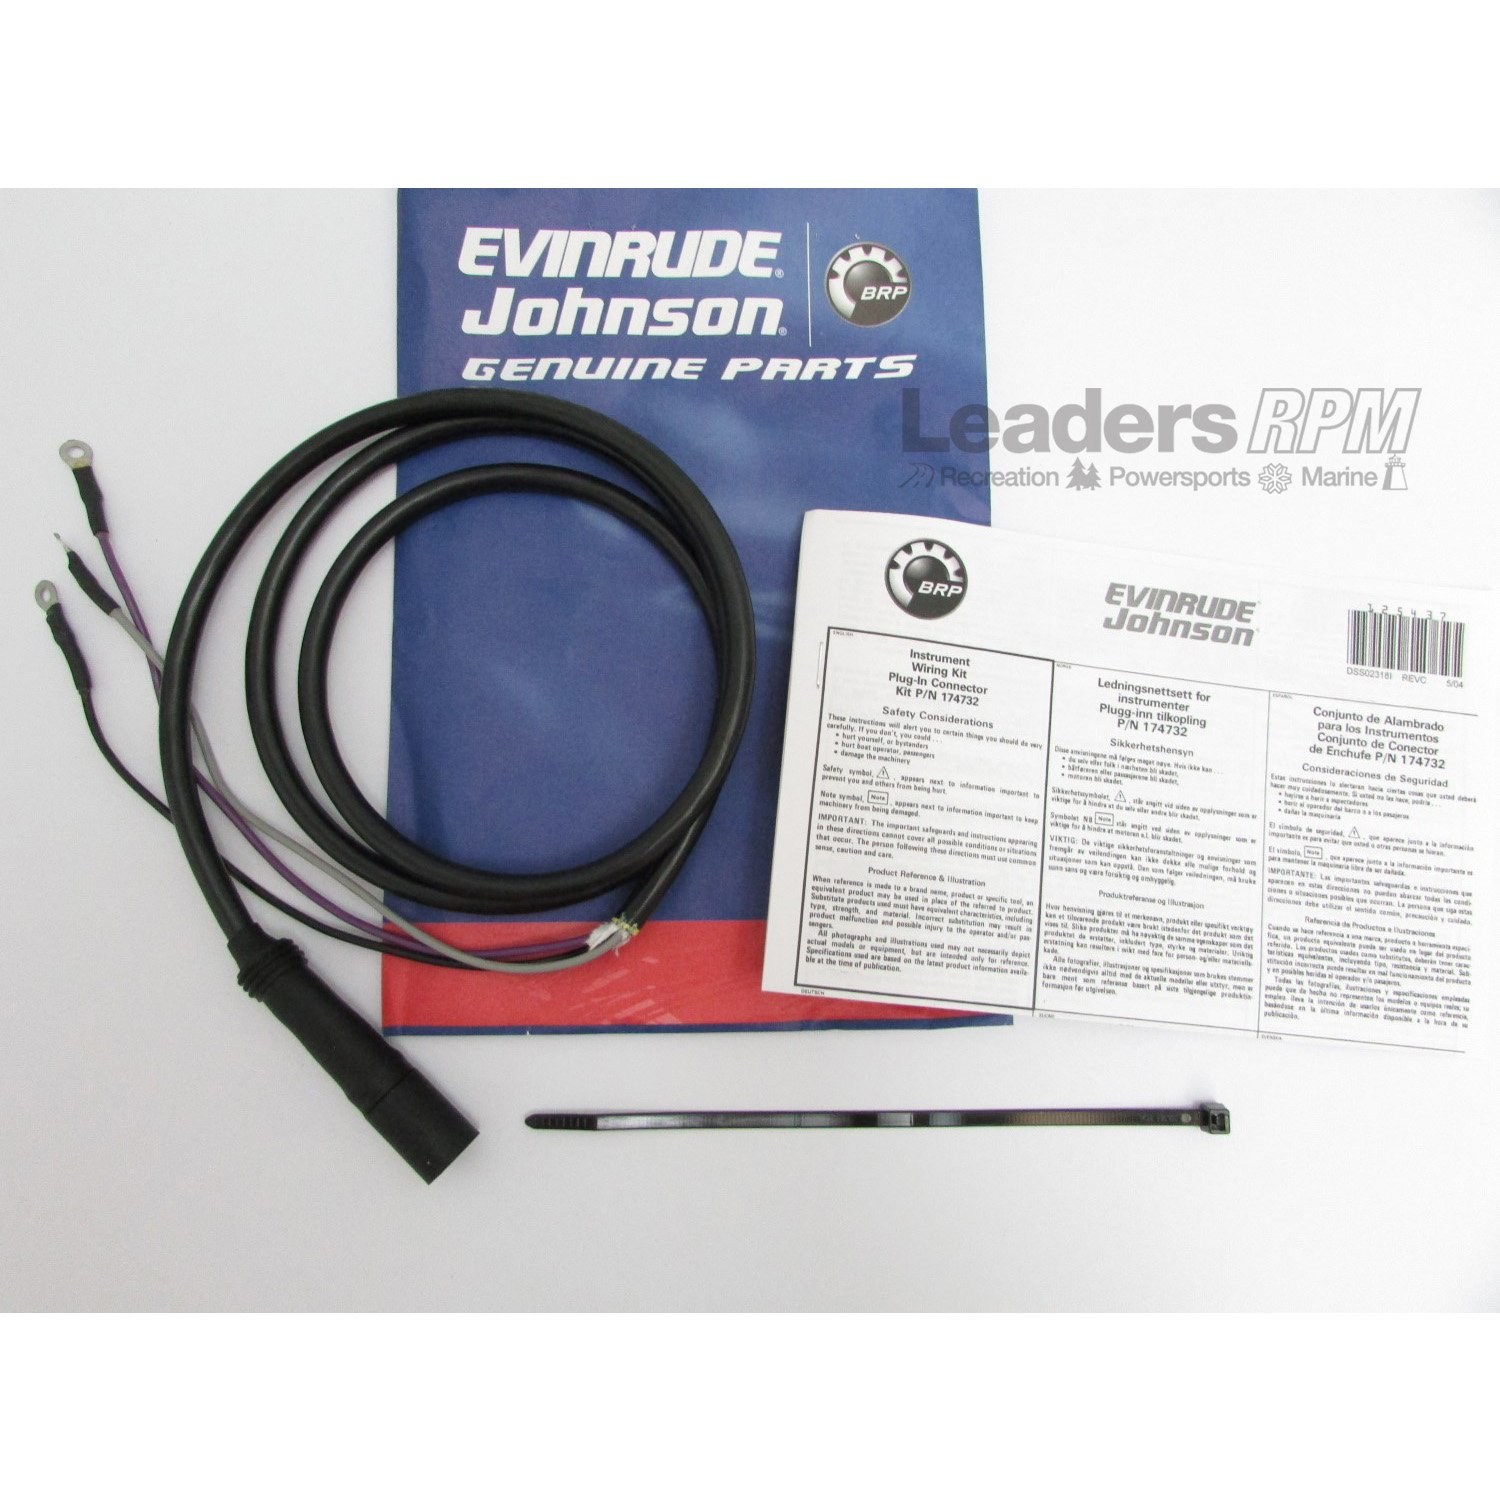 Evinrude Johnson Omc New Oem Instrument Tach Wiring 100 Harness Diagram 174732 0174732 Automotive